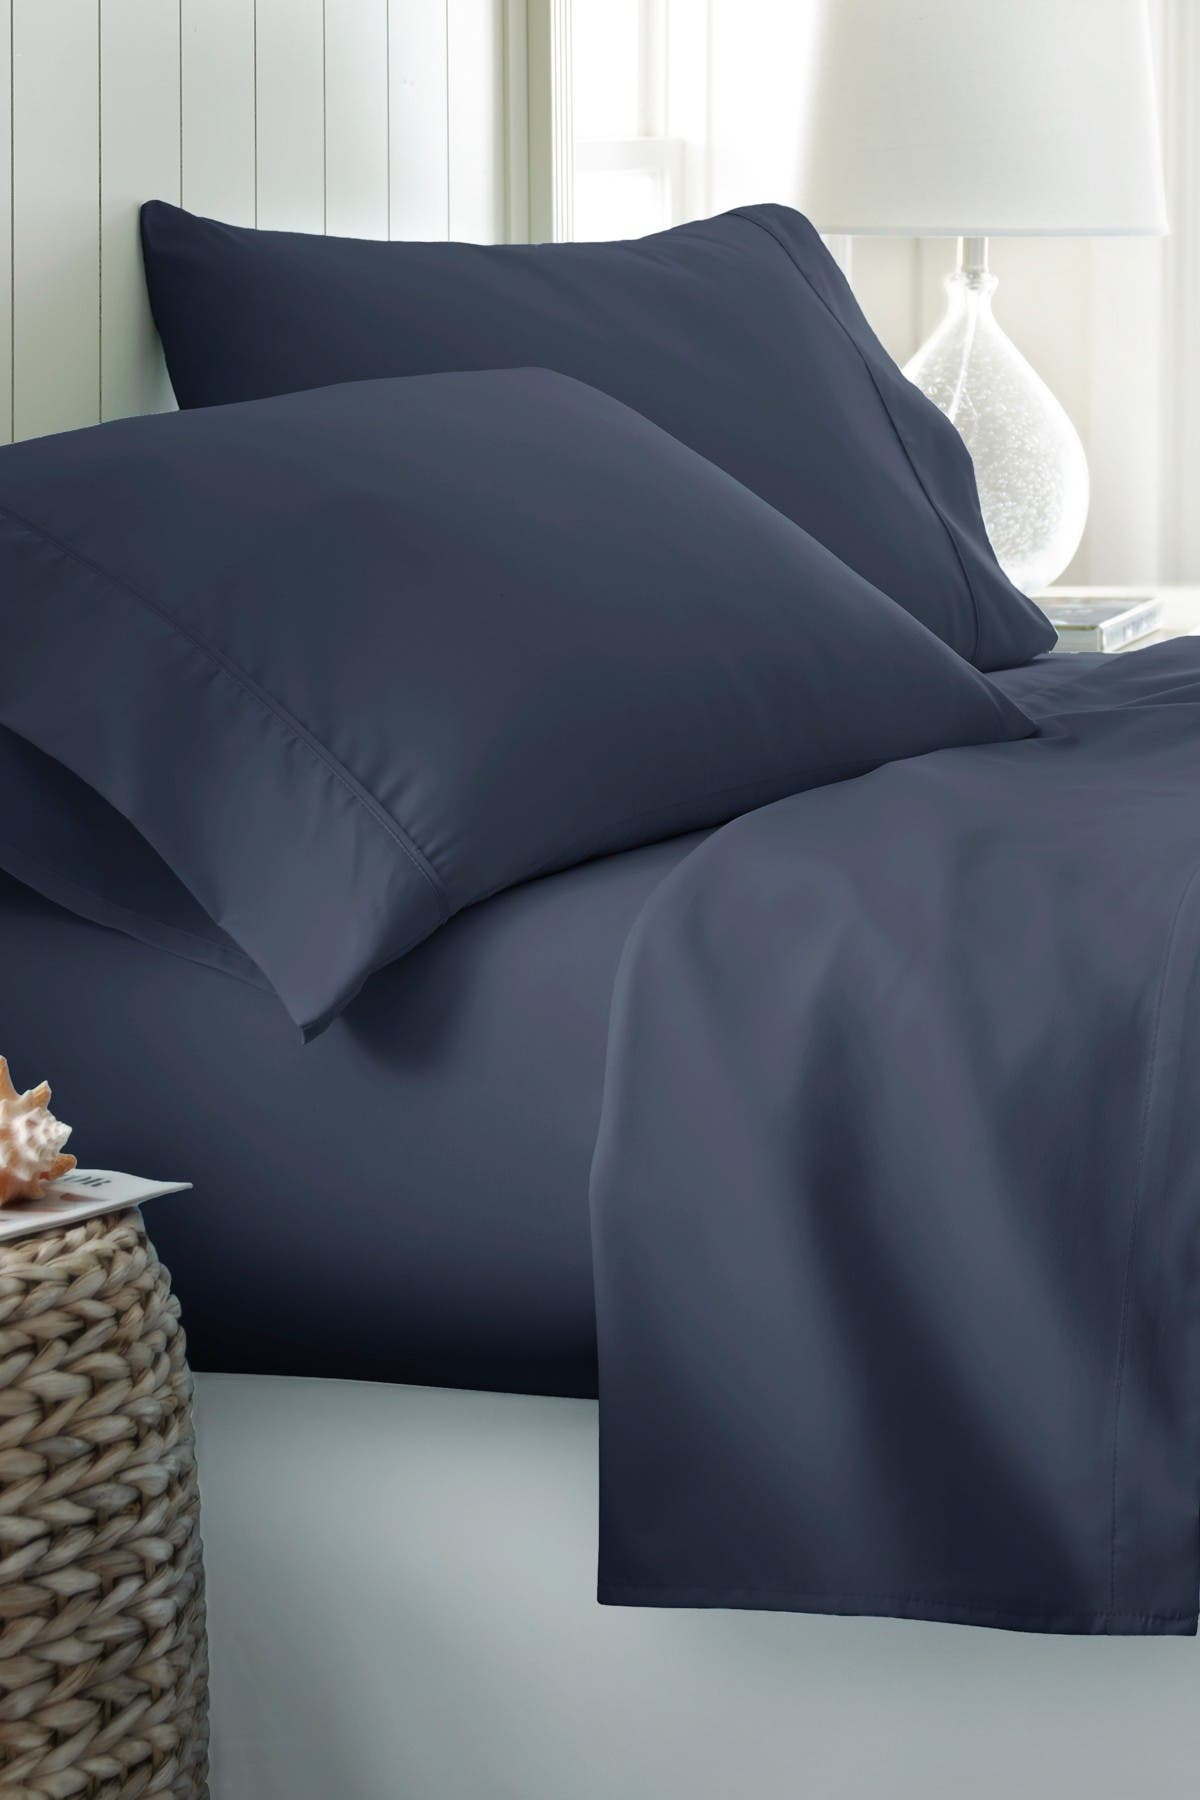 Image of IENJOY HOME King Hotel Collection Premium Ultra Soft 4-Piece Bed Sheet Set - Navy